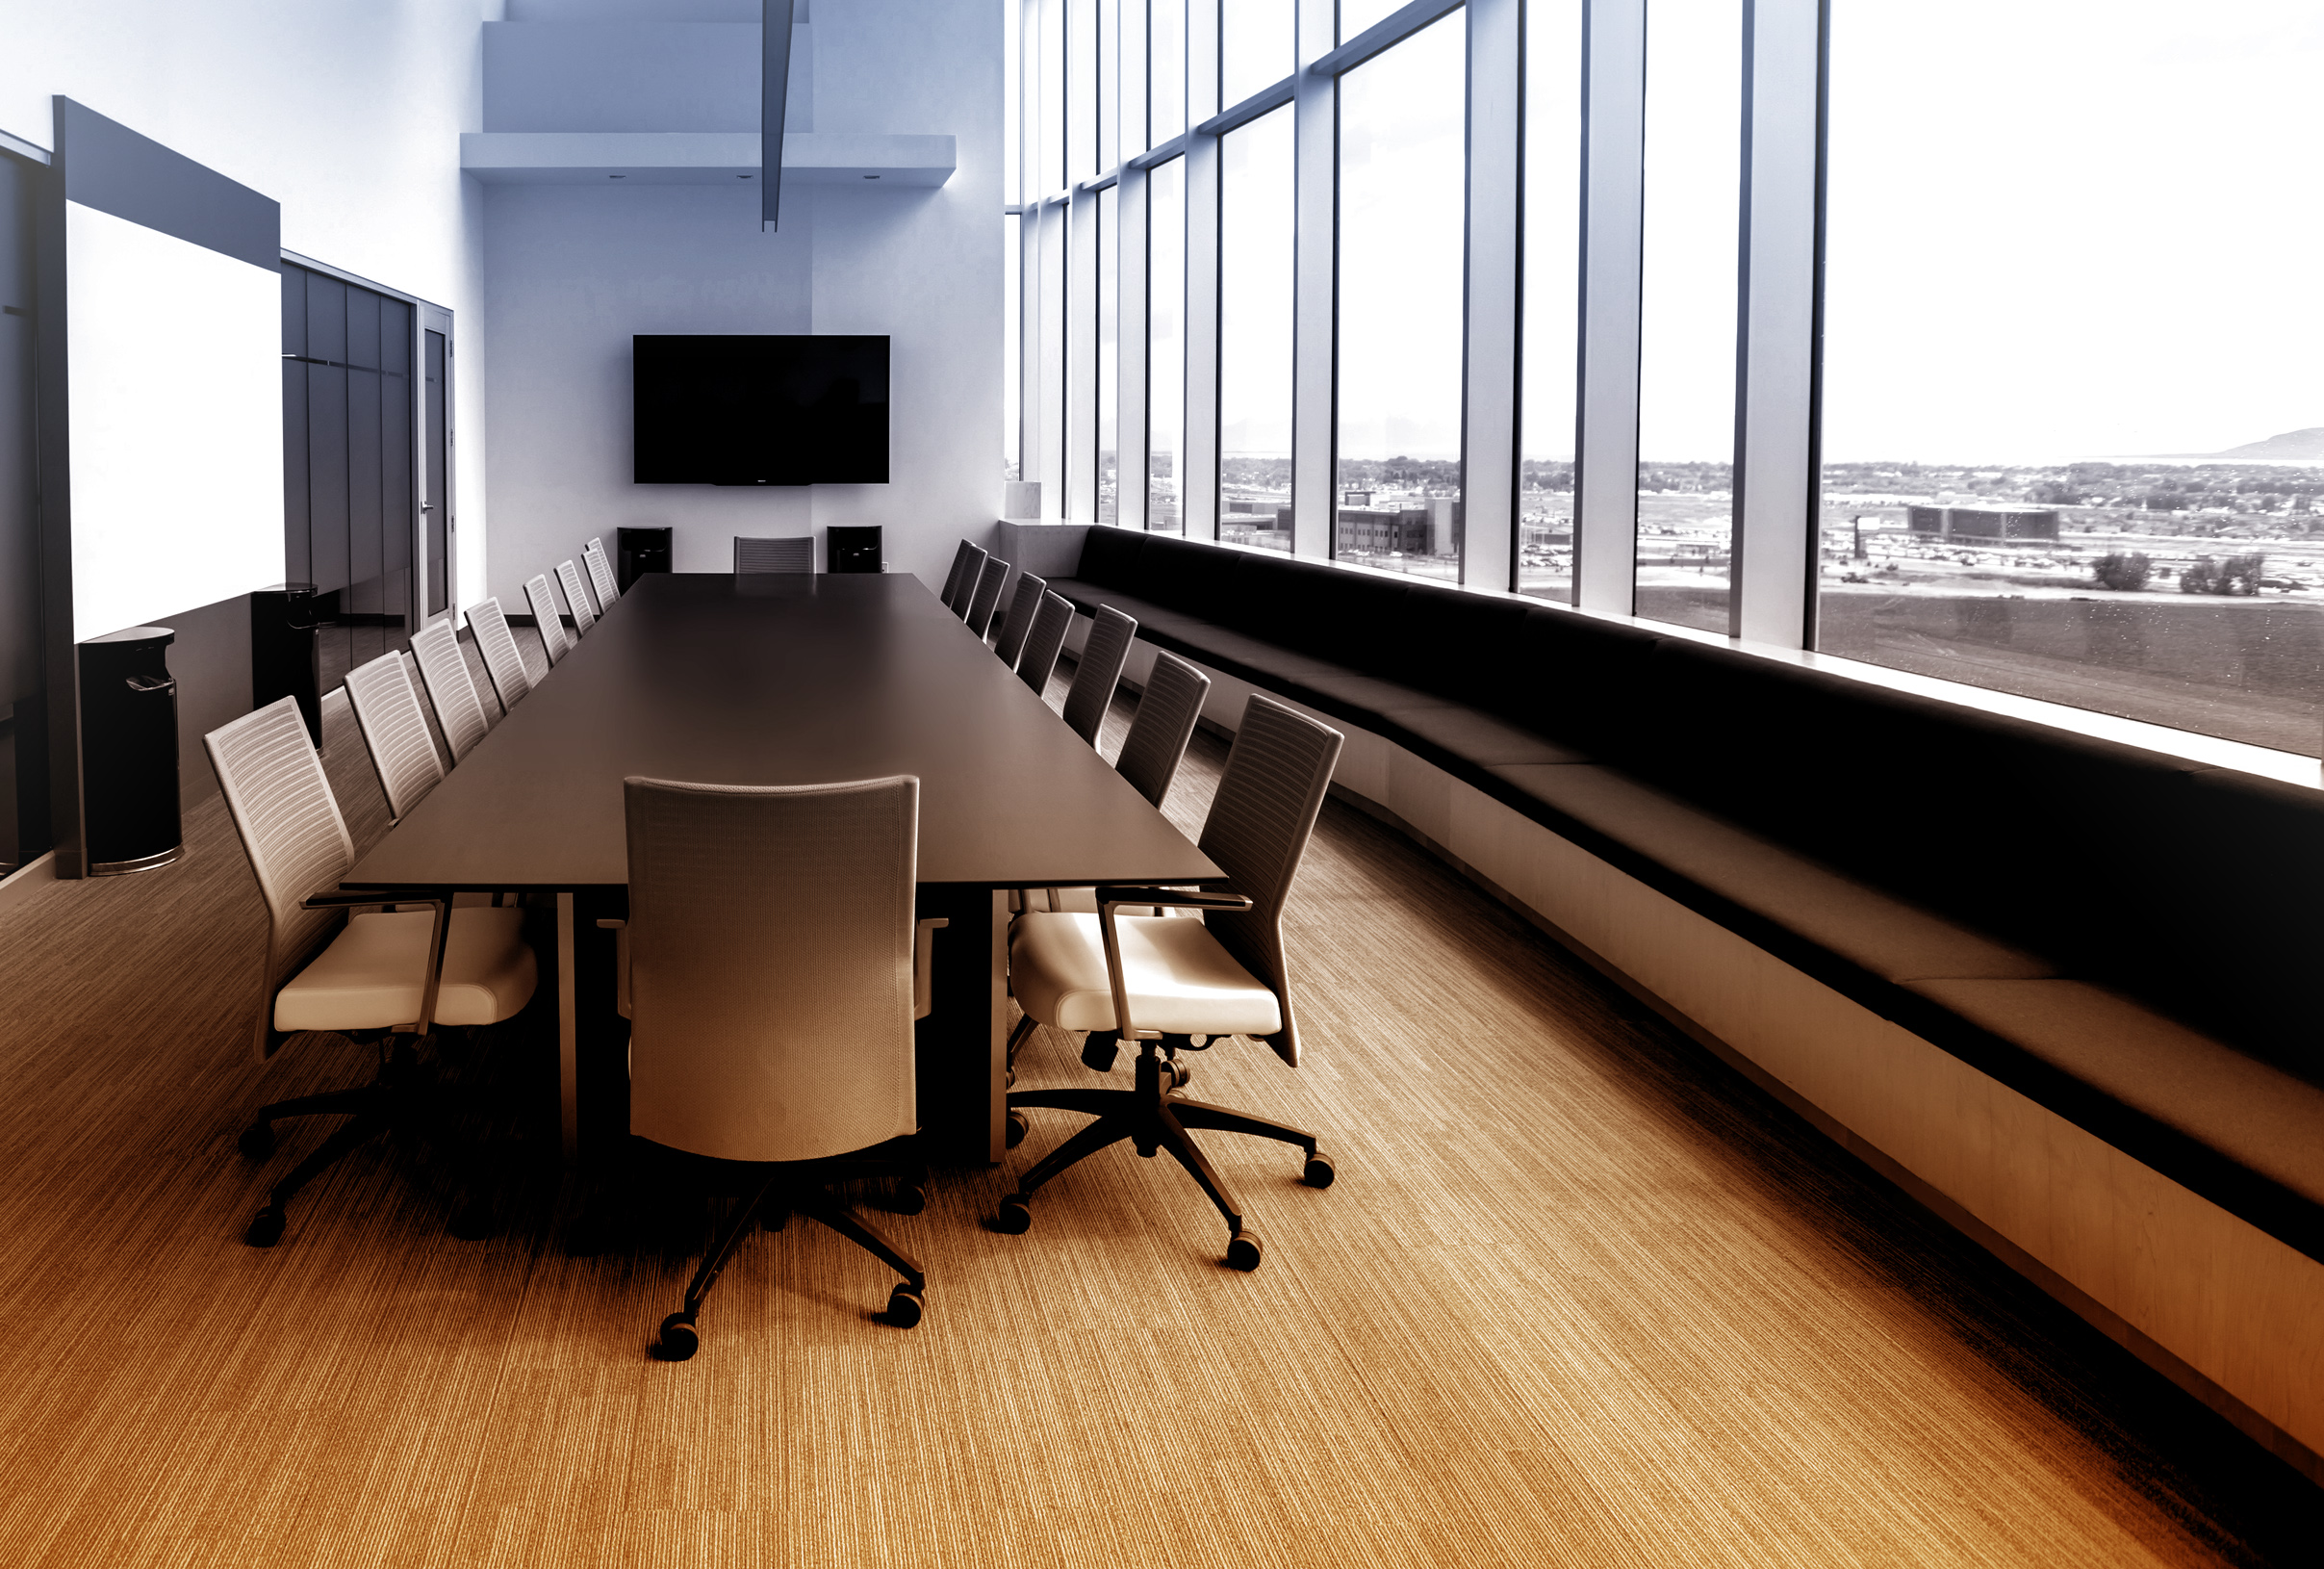 Meeting room - colorized photo